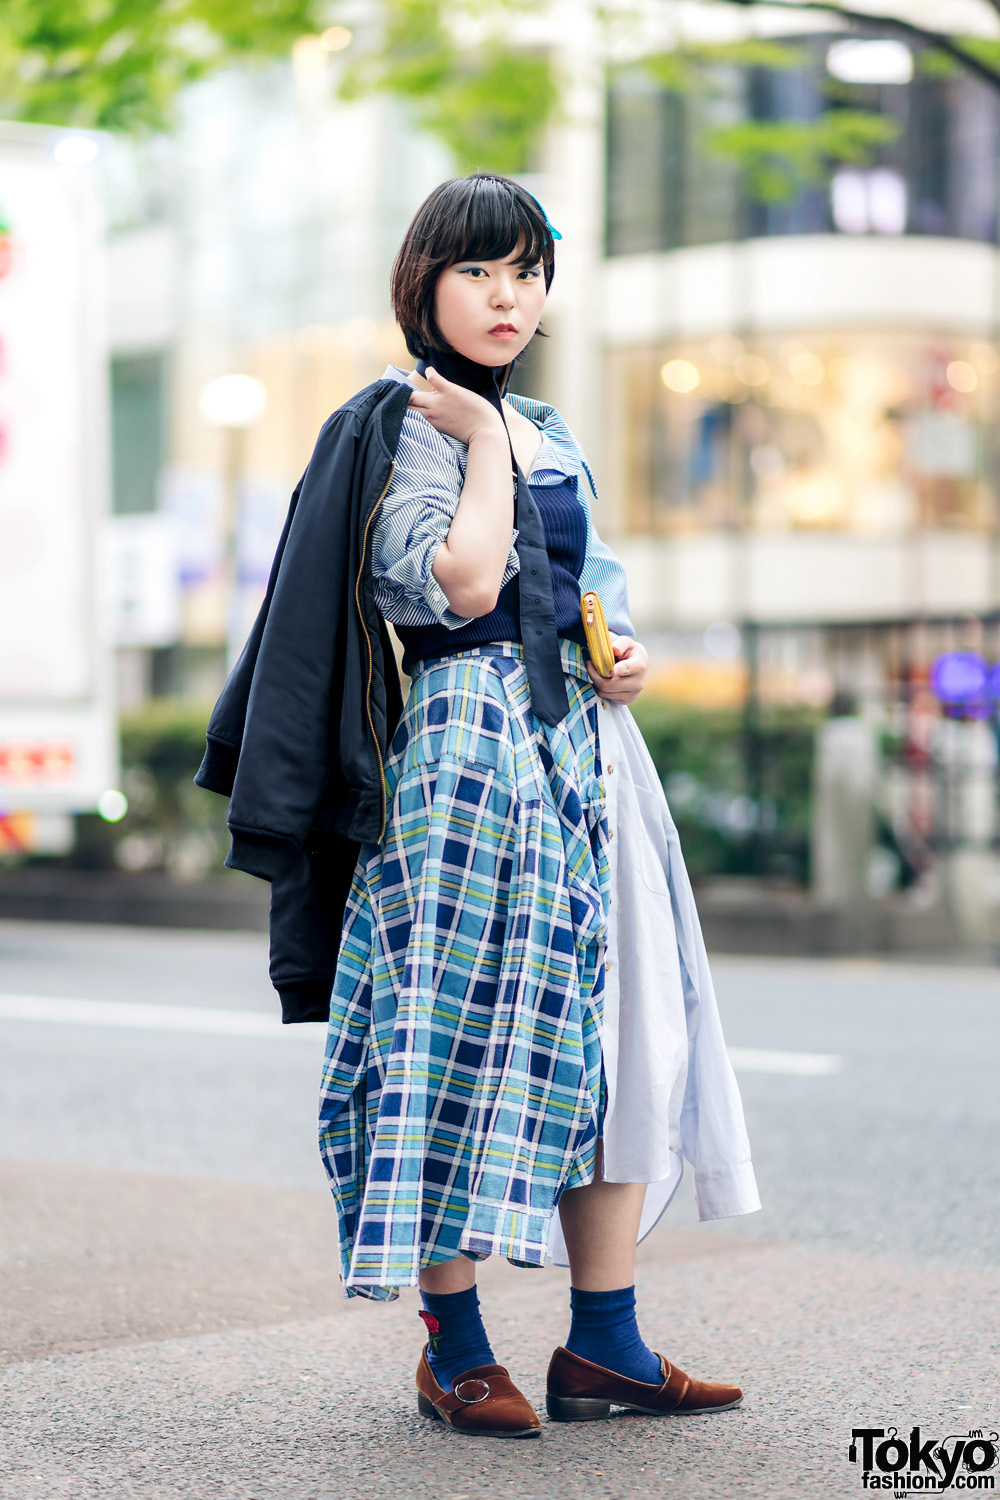 Japanese Remake Fashion In Harajuku W Skirt Made Of Two